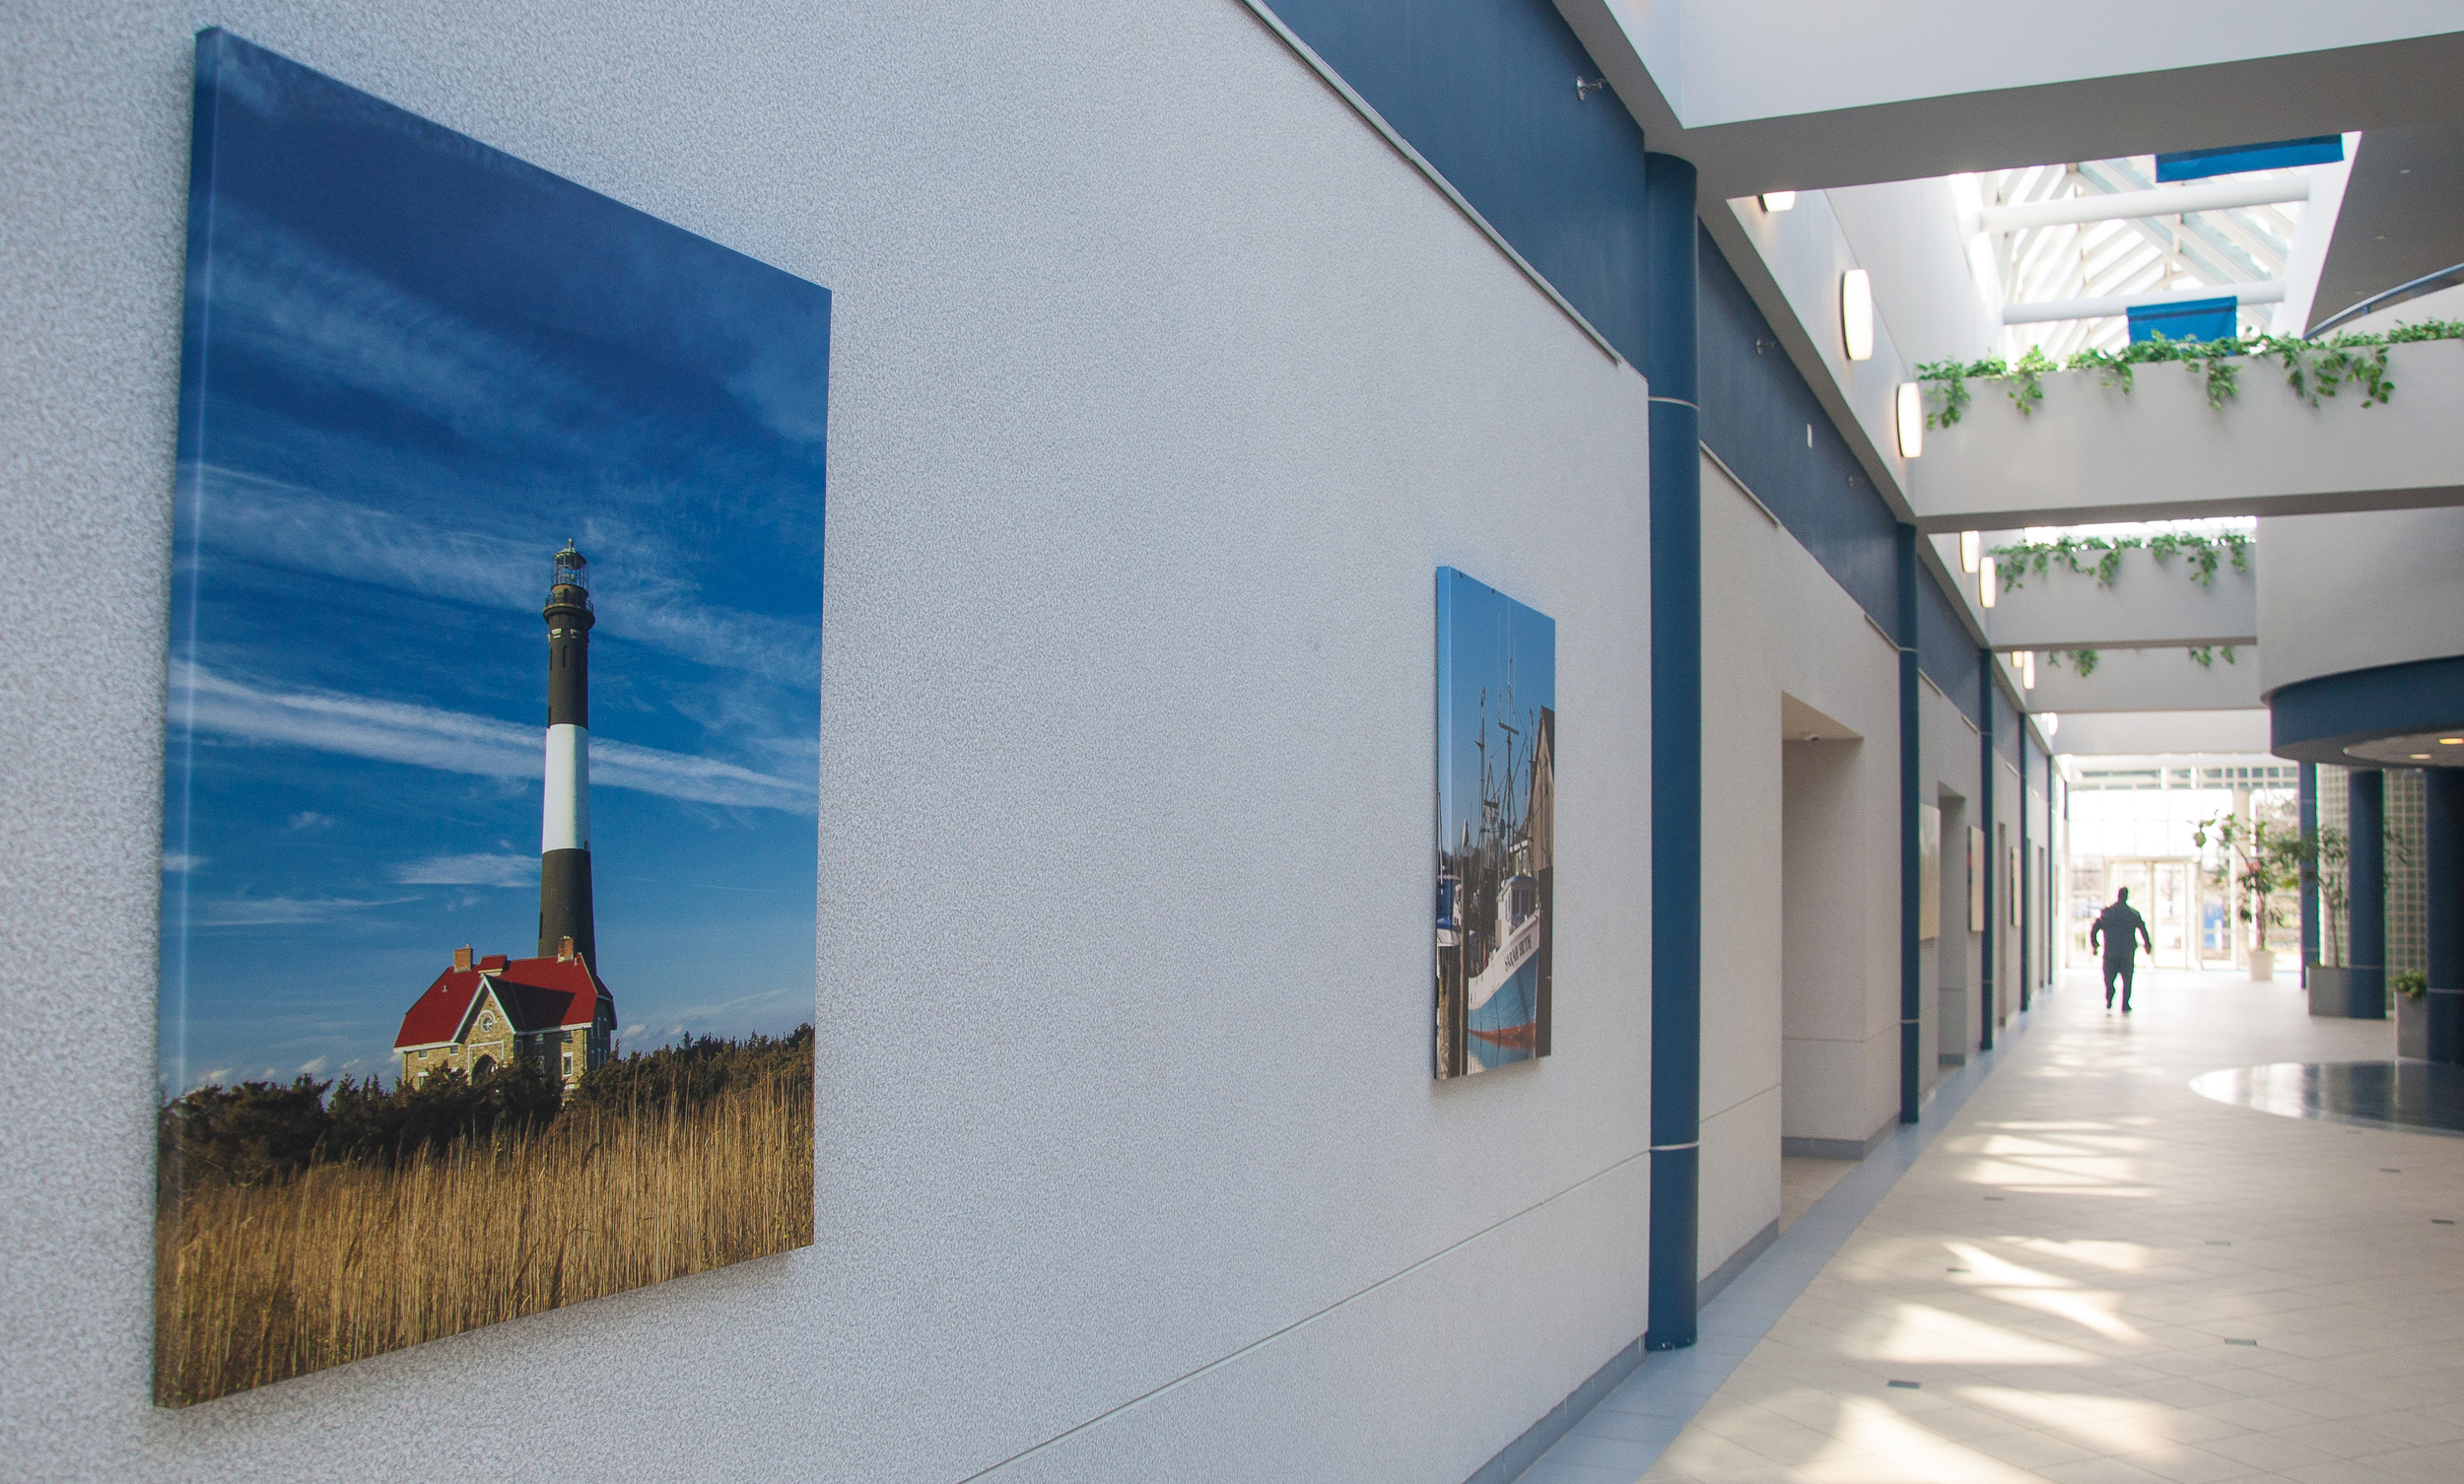 The atrium of an office complex in Melville has 13 photo canvases, including one of the Fire Island Lighthouse. (Photo: Joseph Kellard)